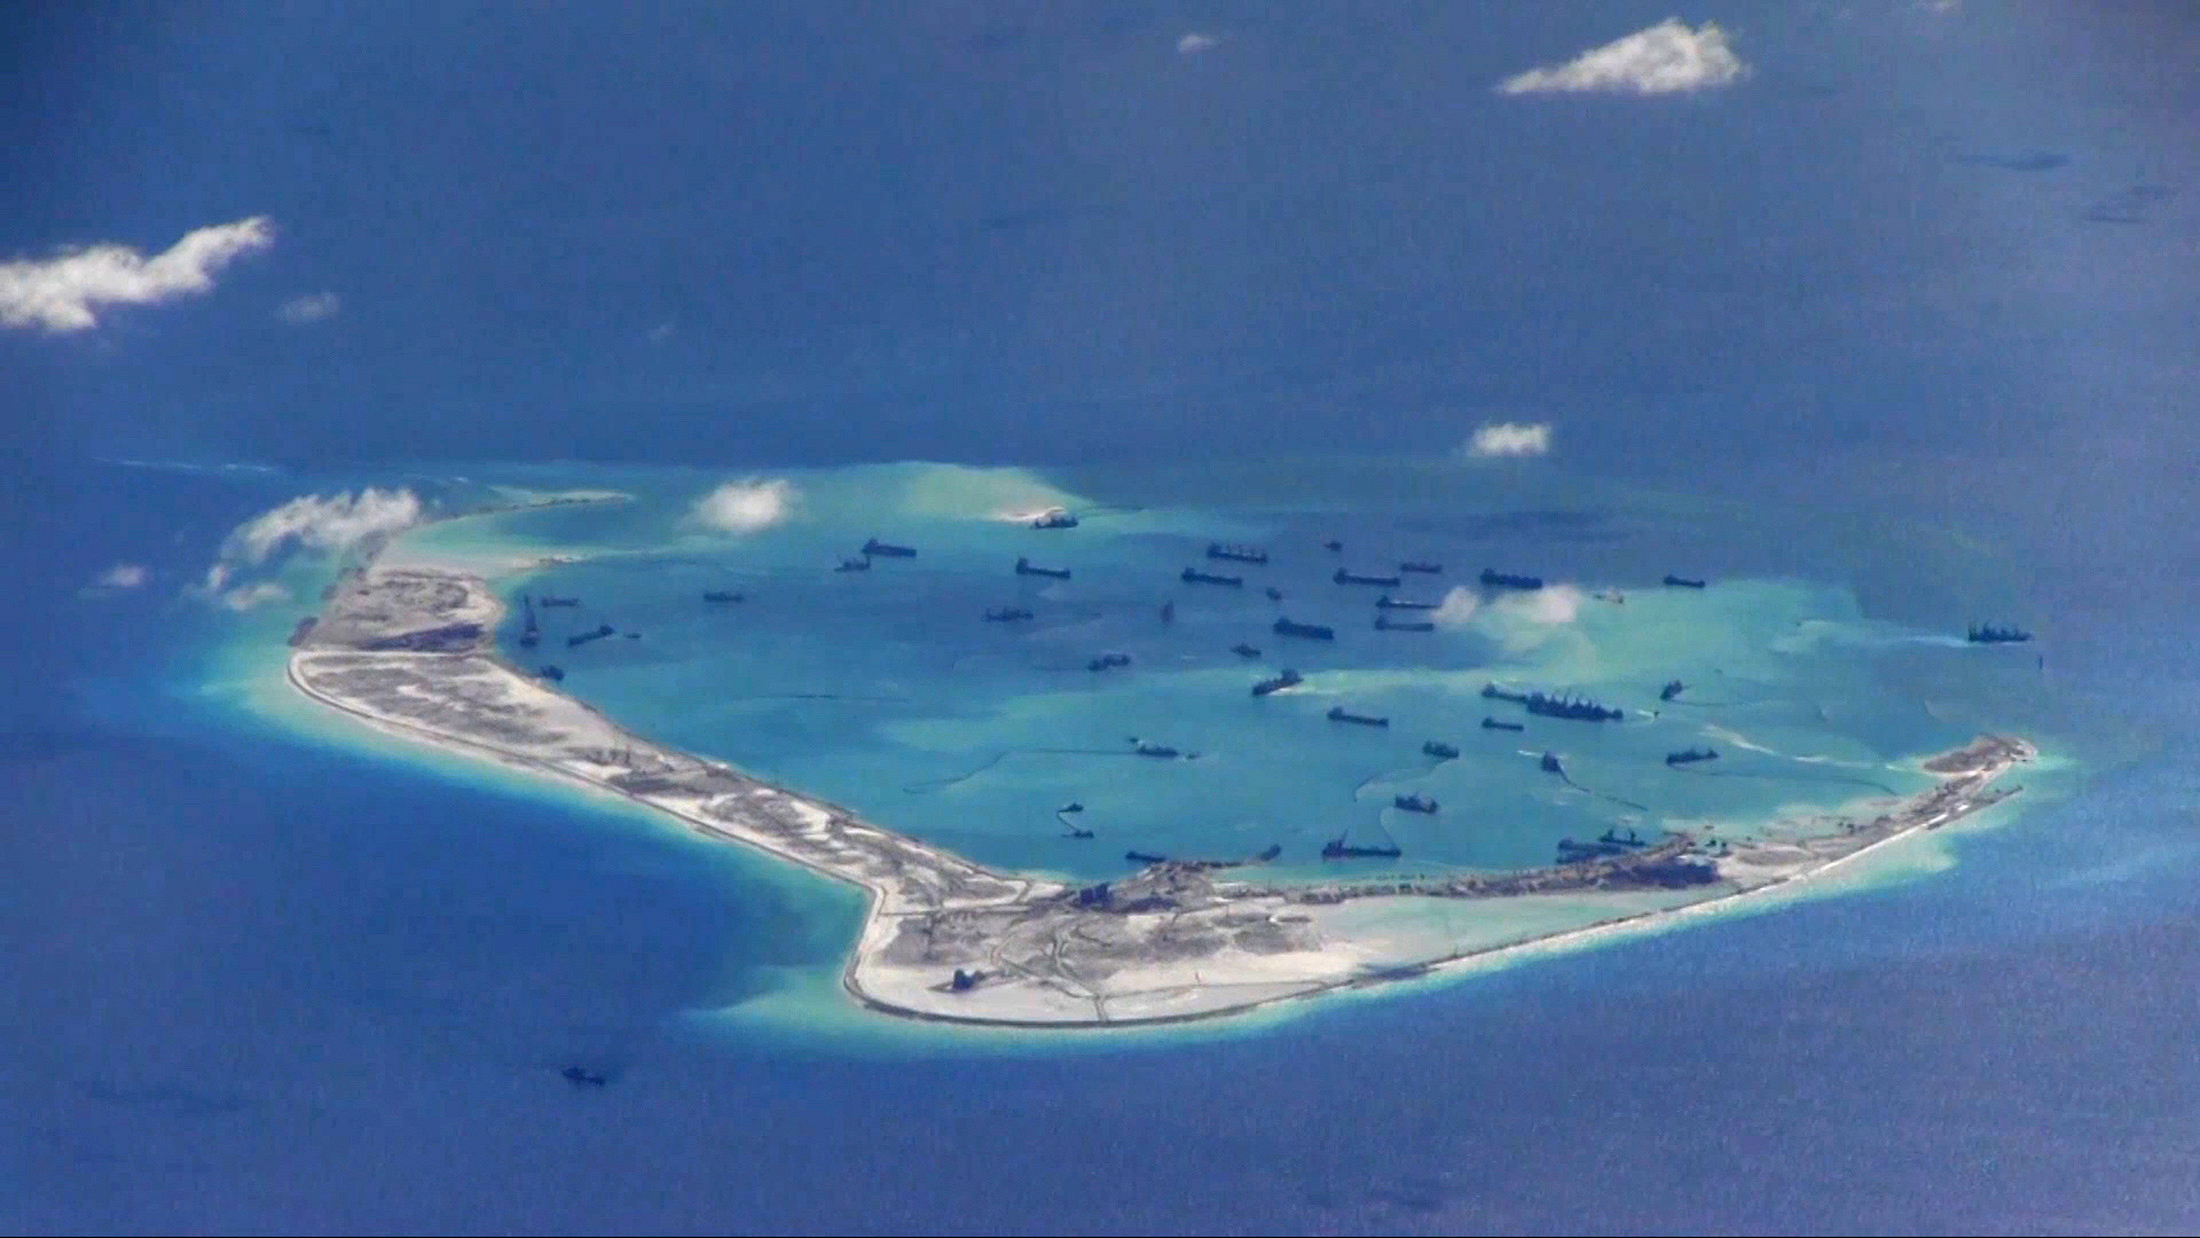 Chinese dredging vessels purportedly in the waters around Mischief Reef in the disputed Spratly Islands in the South China Sea in this still video image from a P-8A Poseidon surveillance aircraft provided by the U.S. Navy on May 21, 2015